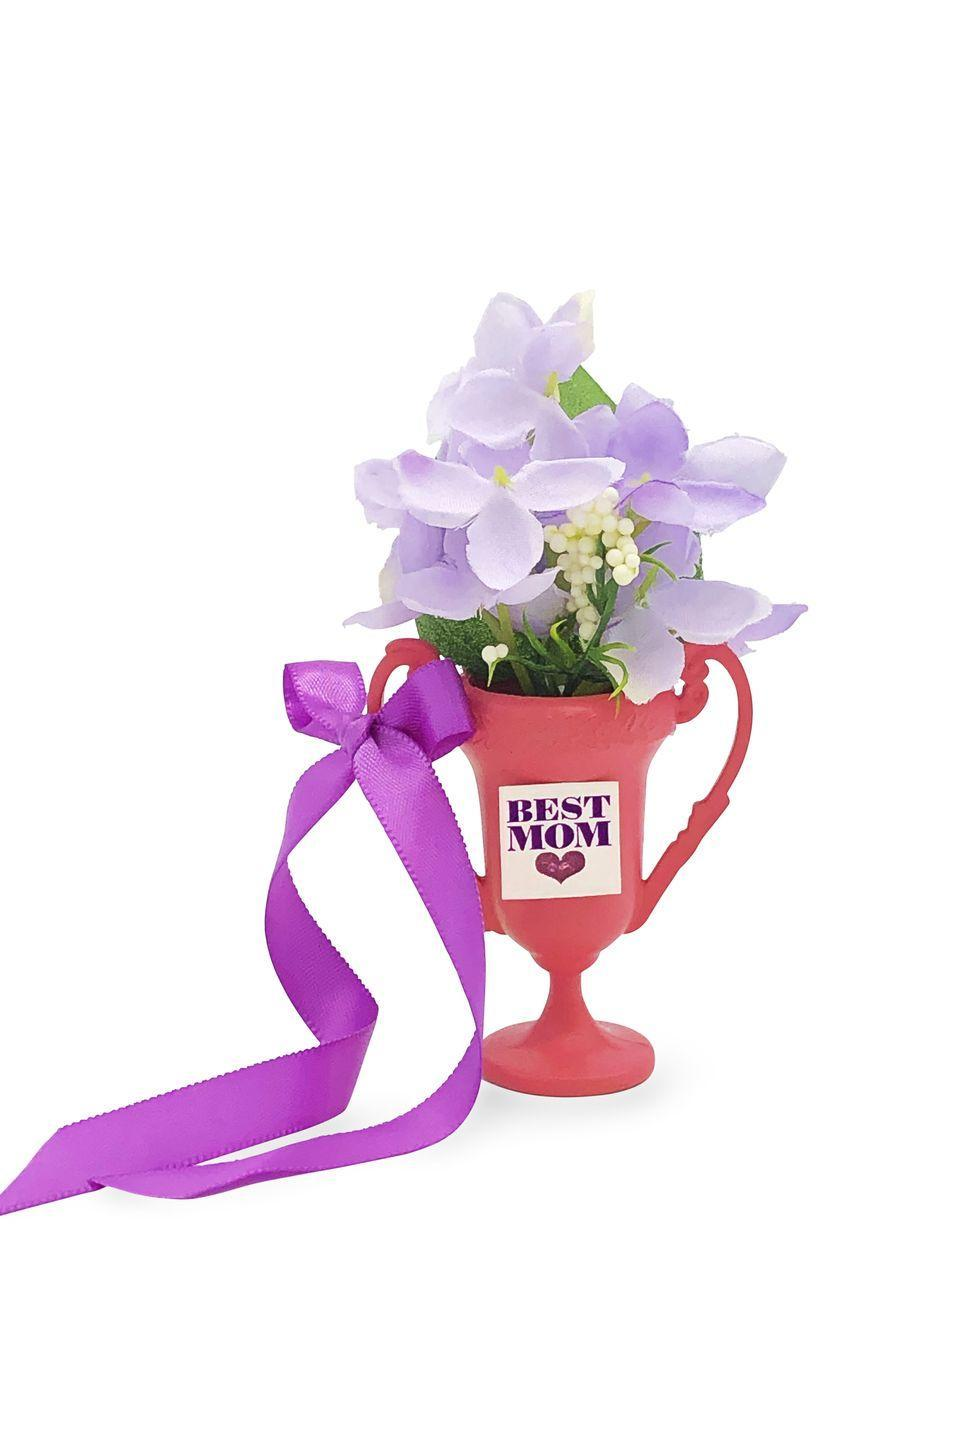 """<p>Cover a small plastic trophy with pink spray paint and let dry before gluing on a """"best mom"""" sign, and filling the trophy with flowers. A total winner!</p>"""